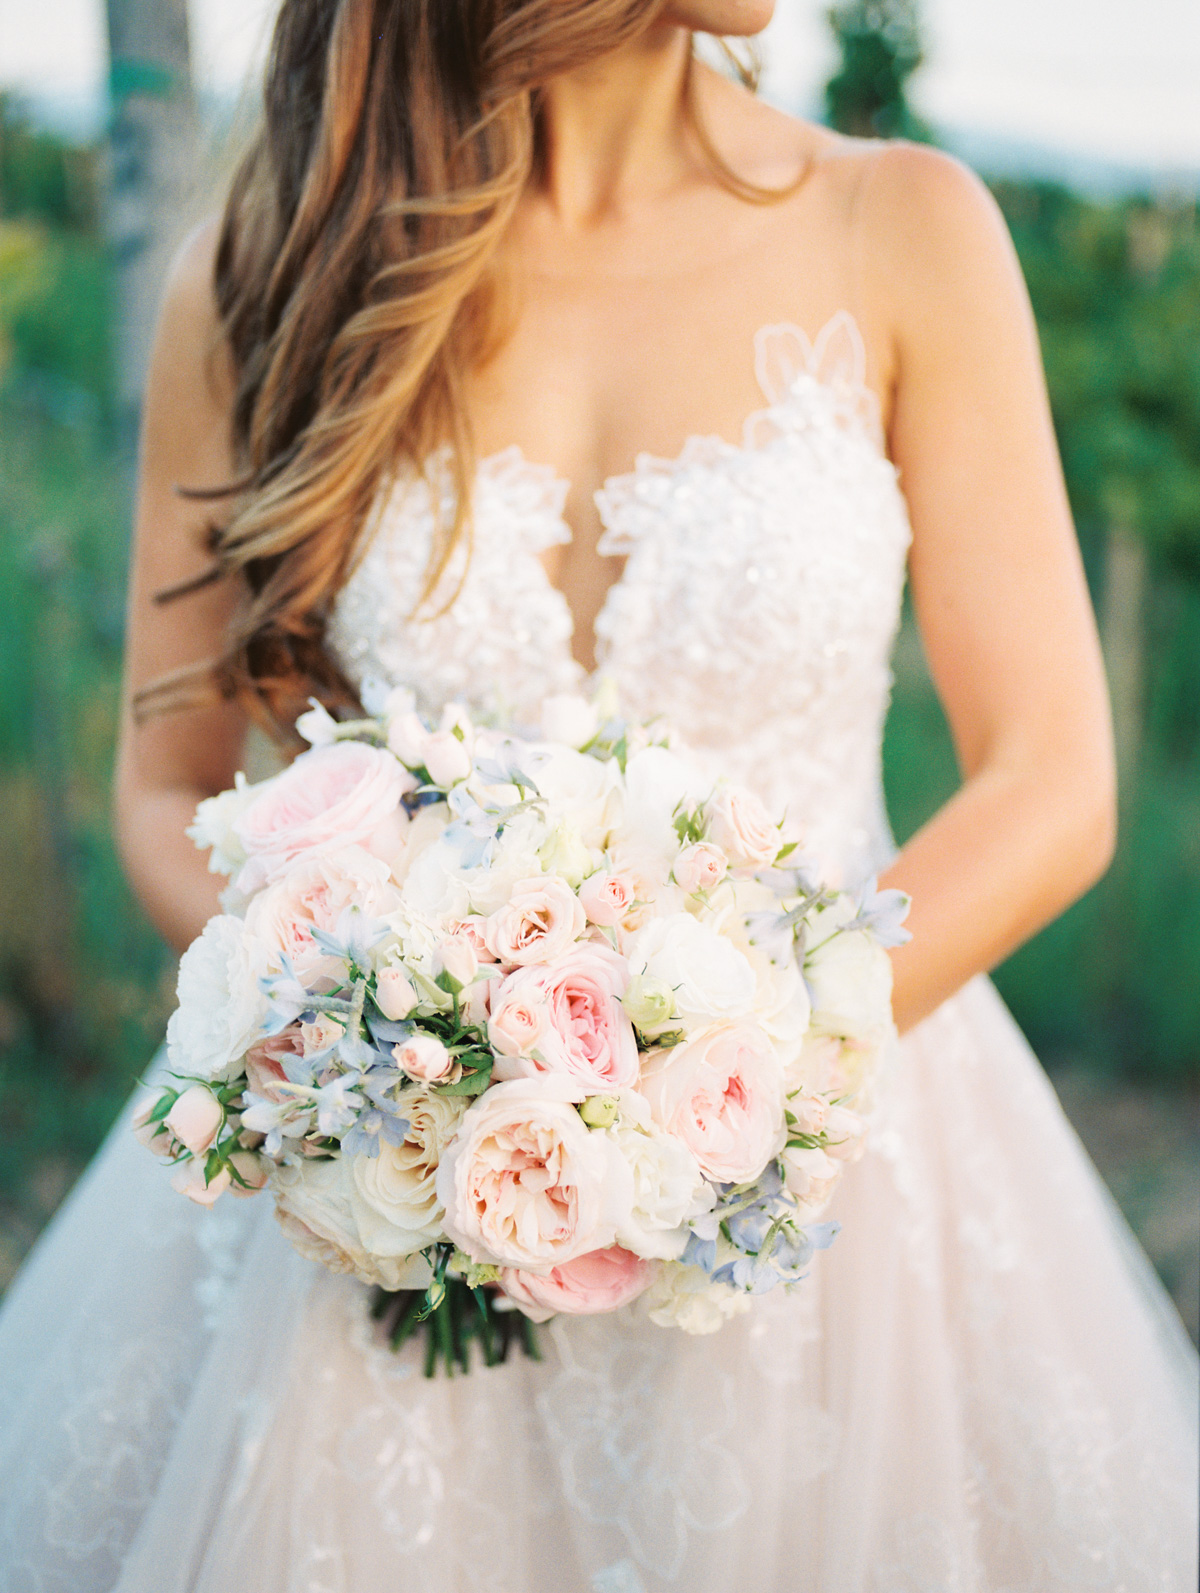 Gorgeous bridal bouquet by Soiree Design & Events | Harrison & Jocelyne's gorgeous Temecula wedding day at Wiens Family Cellars captured by Temecula wedding photographers Betsy & John